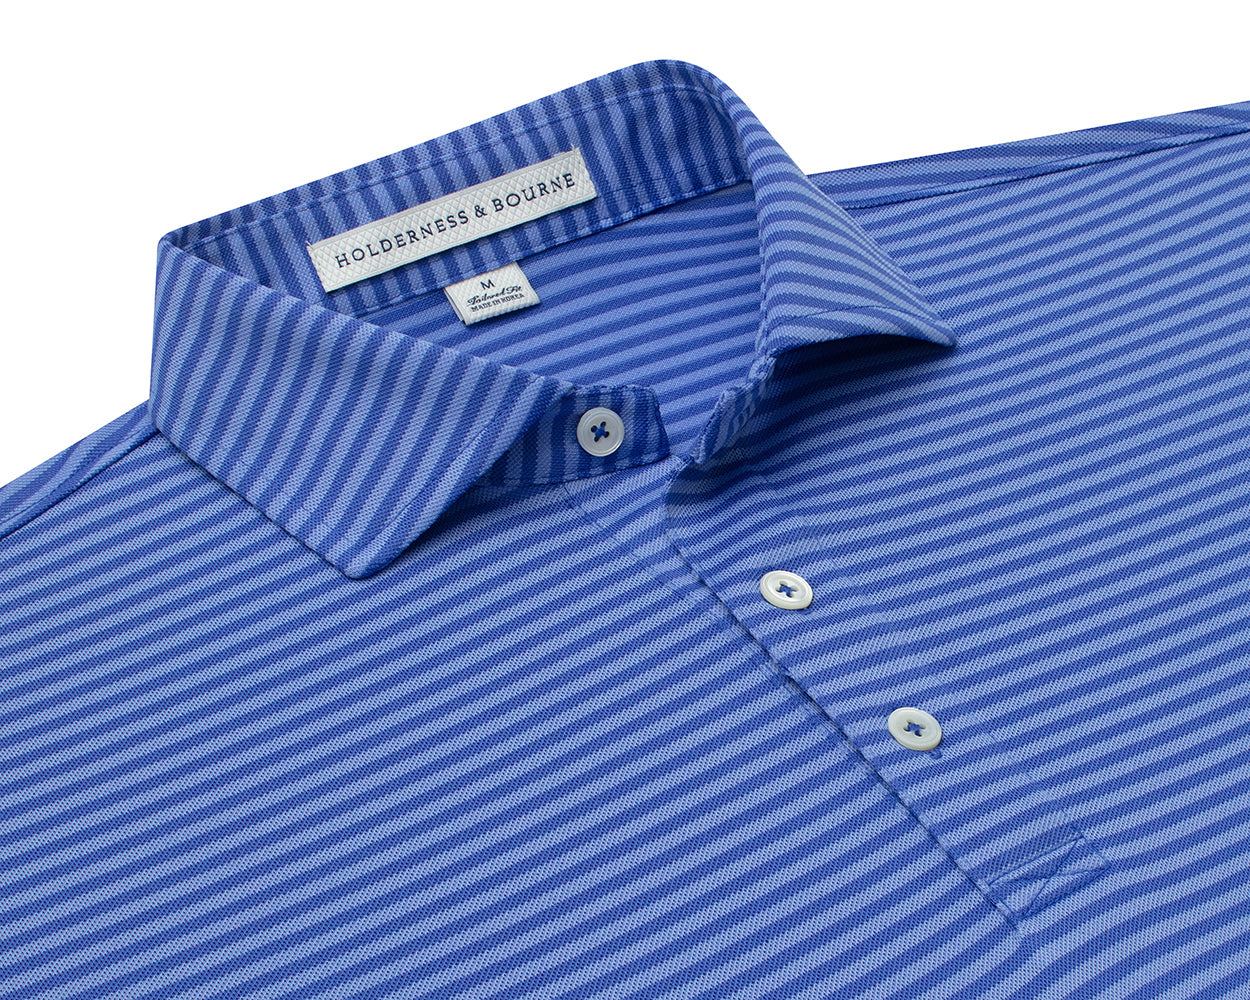 Holderness & Bourne - Performance Shirts